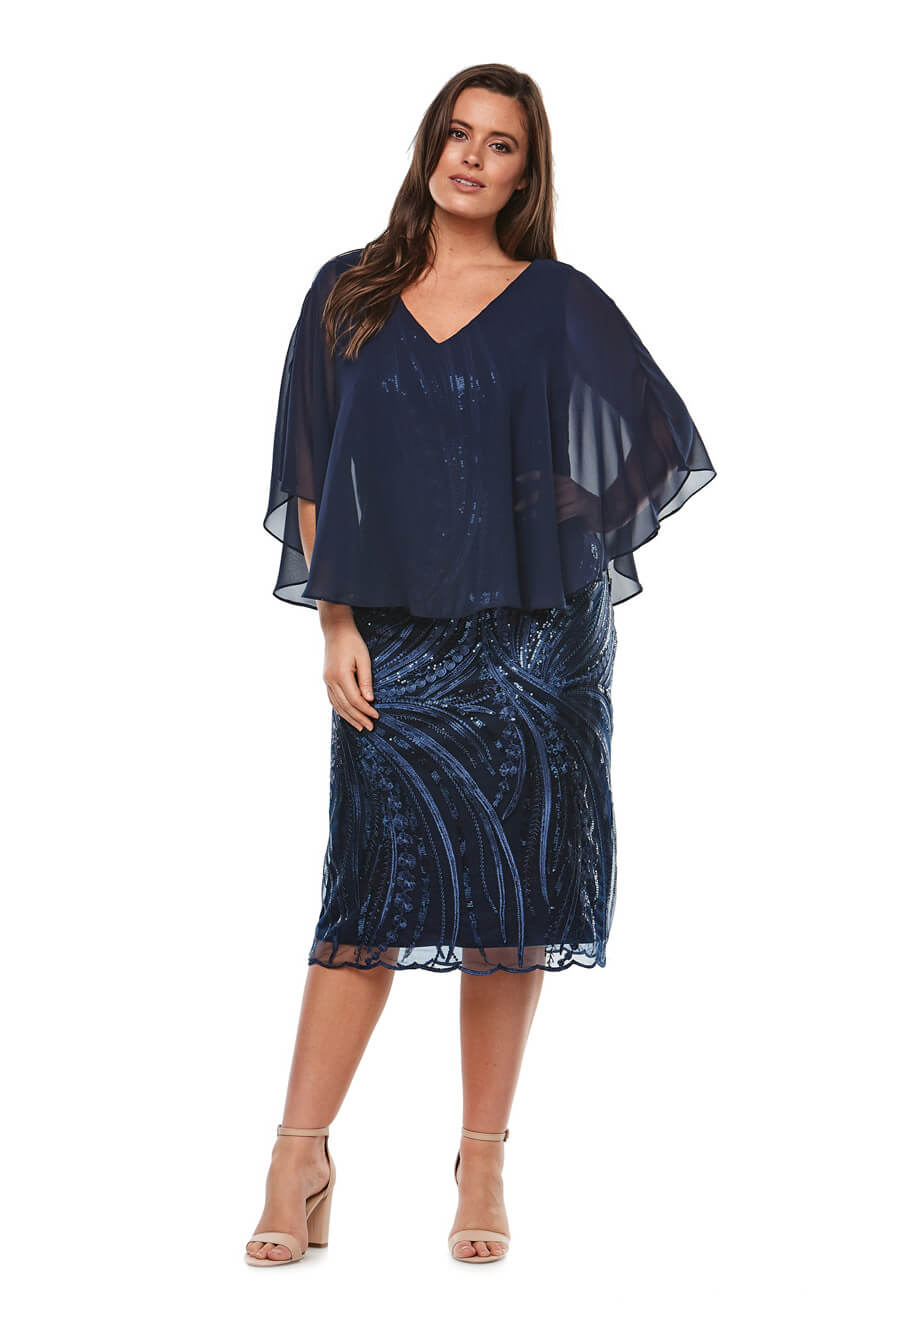 Mid Length V neck embroided dress with chiffon overlay